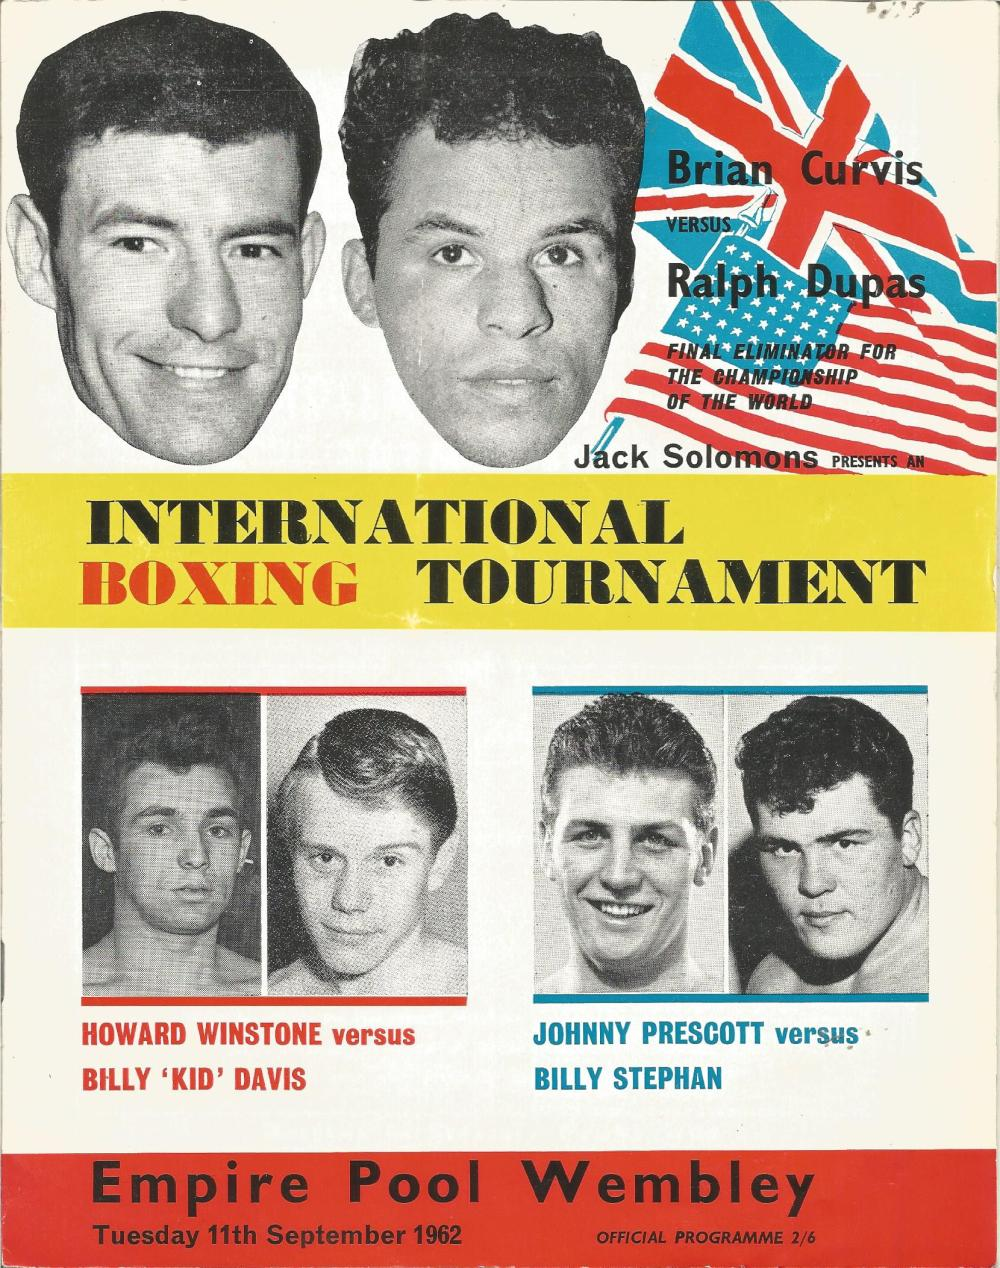 Boxing Brian Curvis v Ralph Dupas vintage fight programme Empire Pool Wembley 11th September 1962.